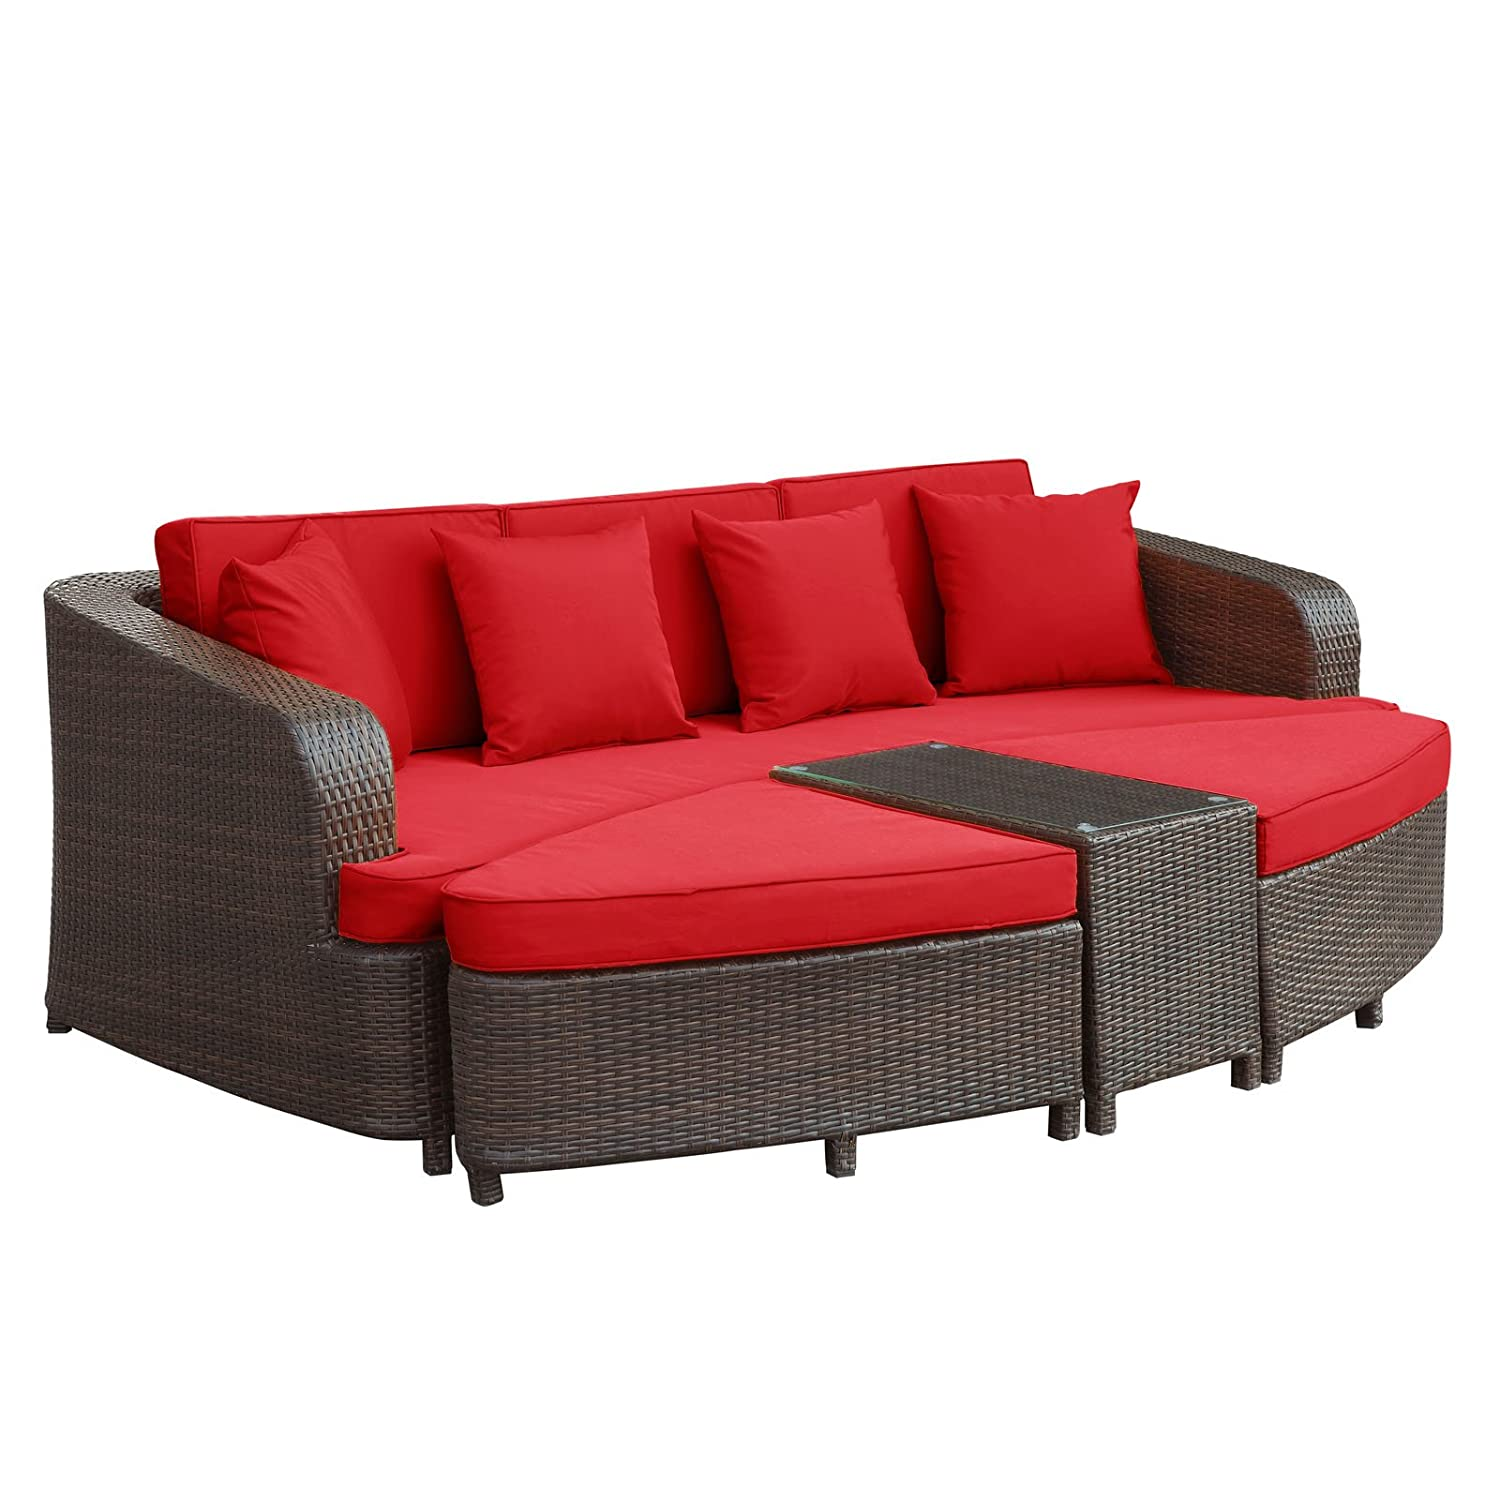 Amazon Modway Monterey Outdoor Wicker Rattan Sectional Sofa